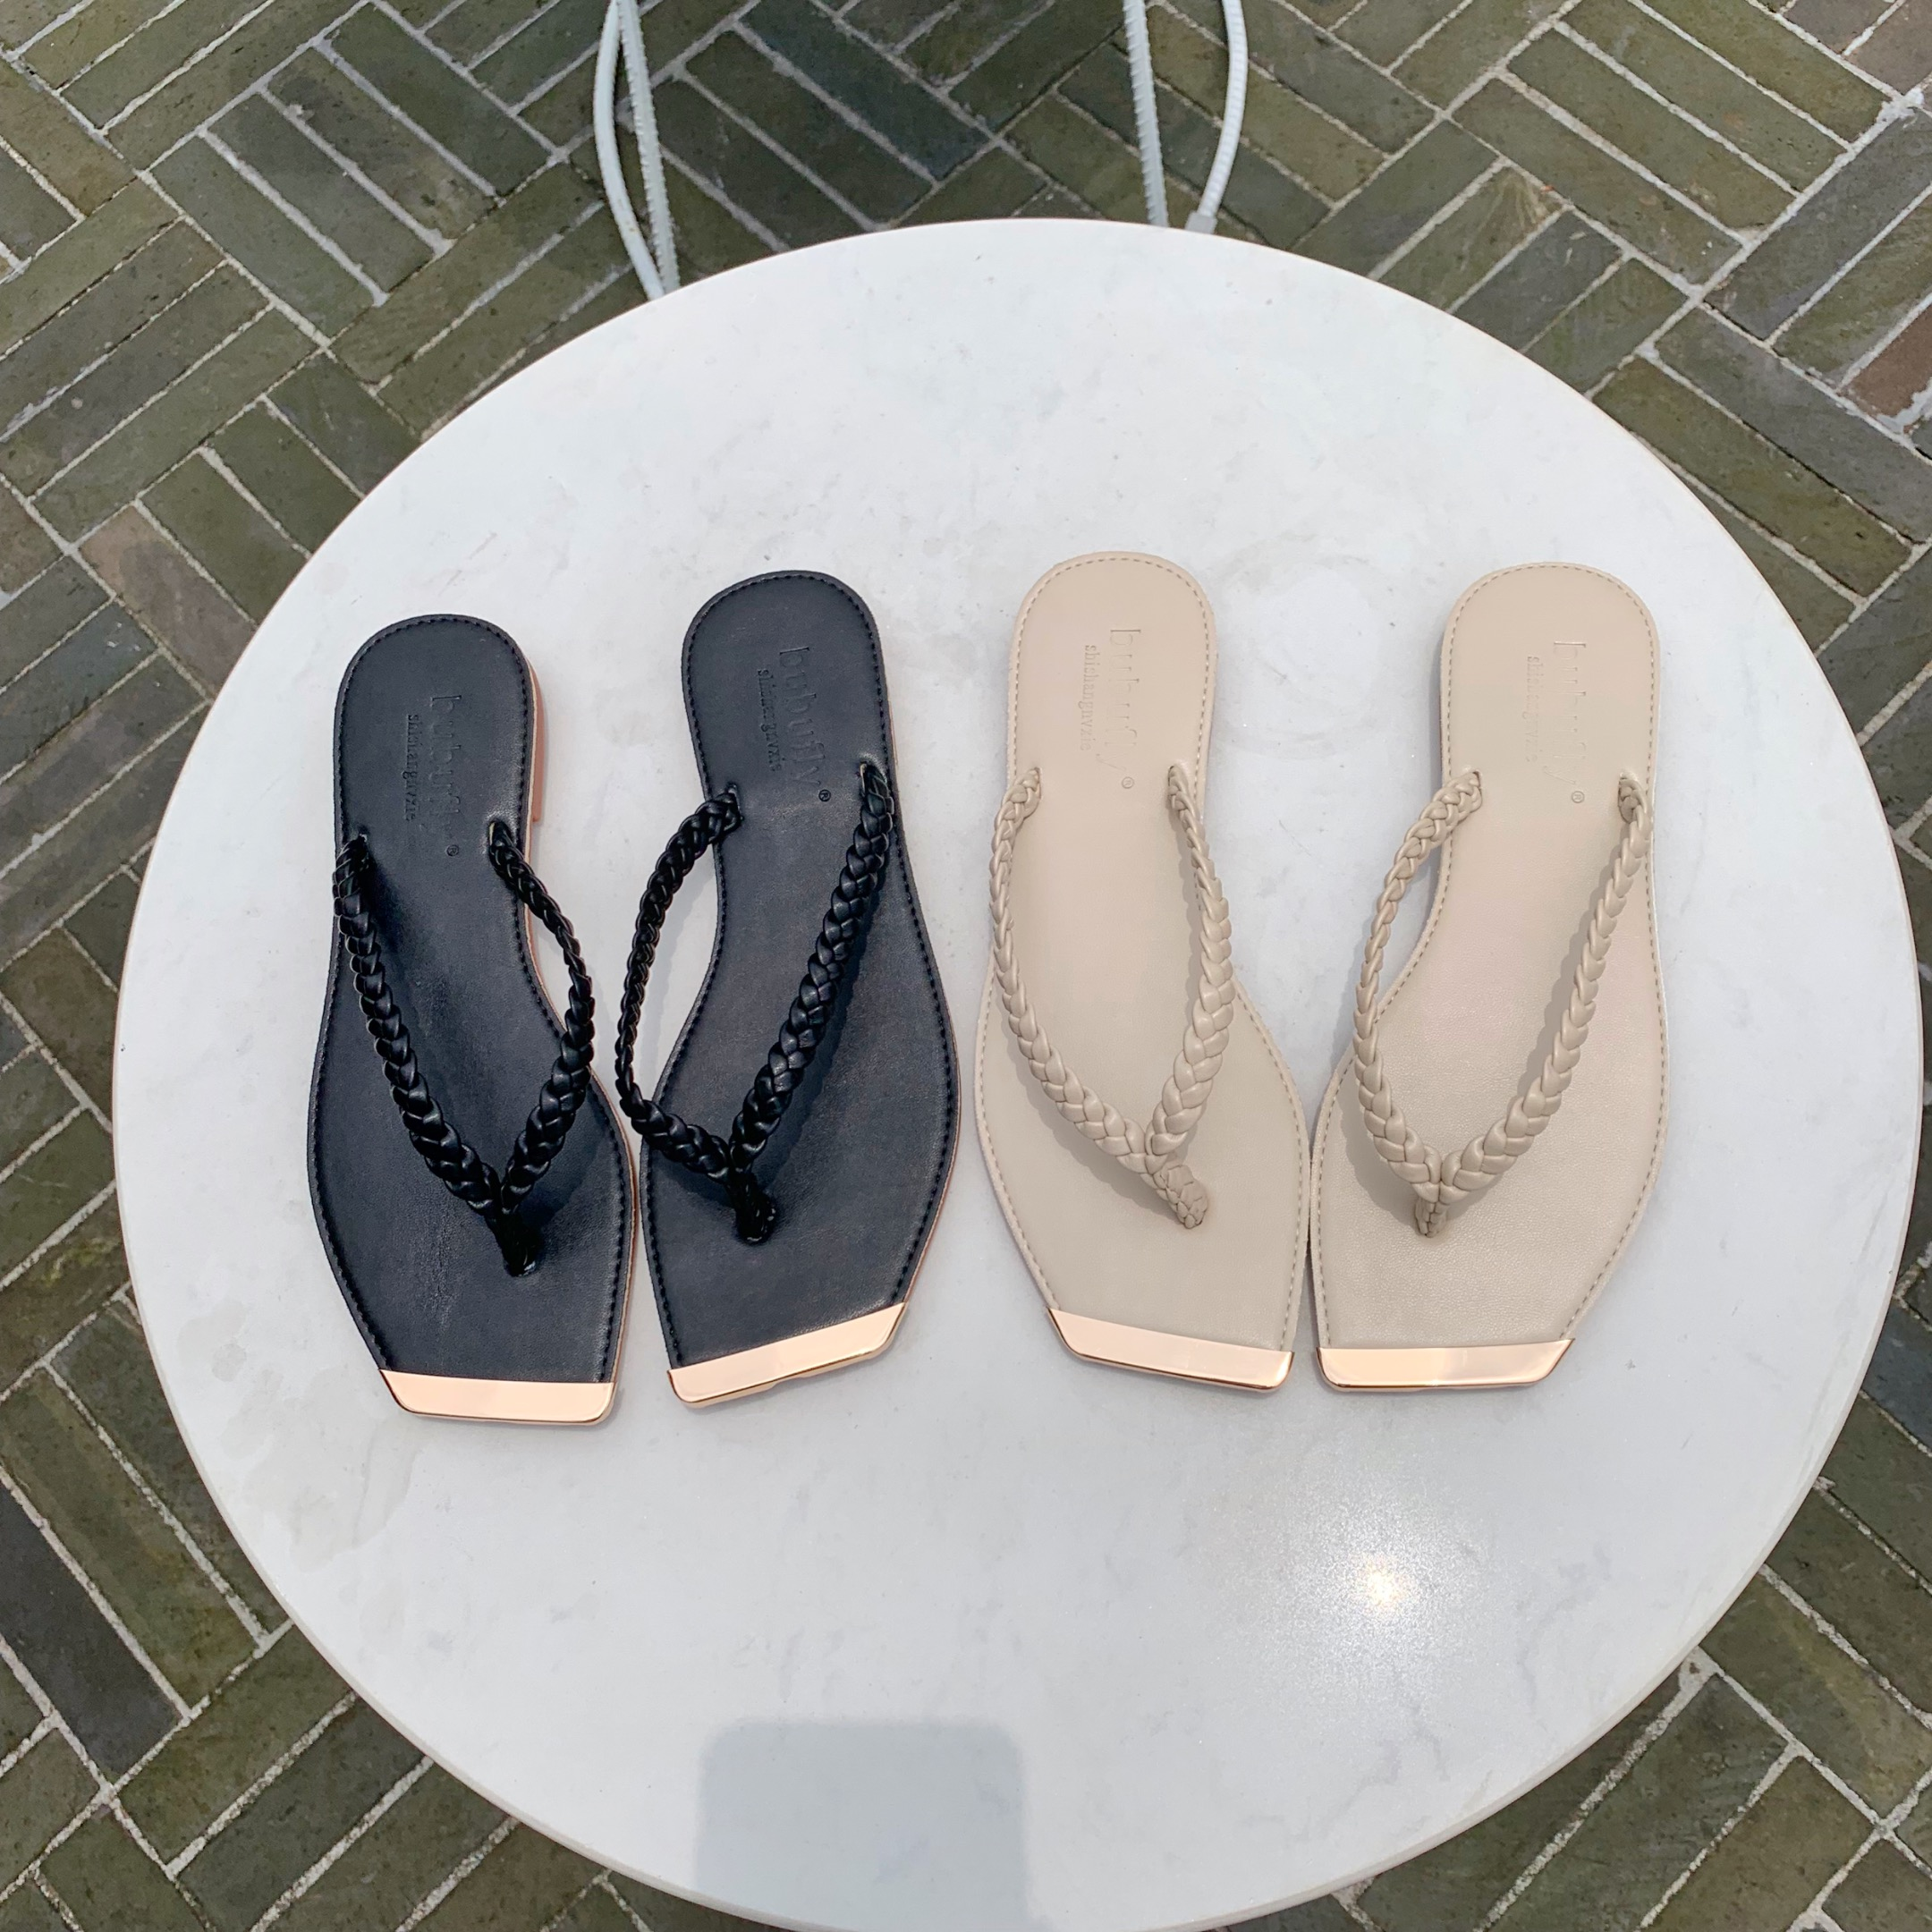 Summer New Fashion Simple Clip Toe Braided Belt Square Head Flat Casual Casual Slippers Women